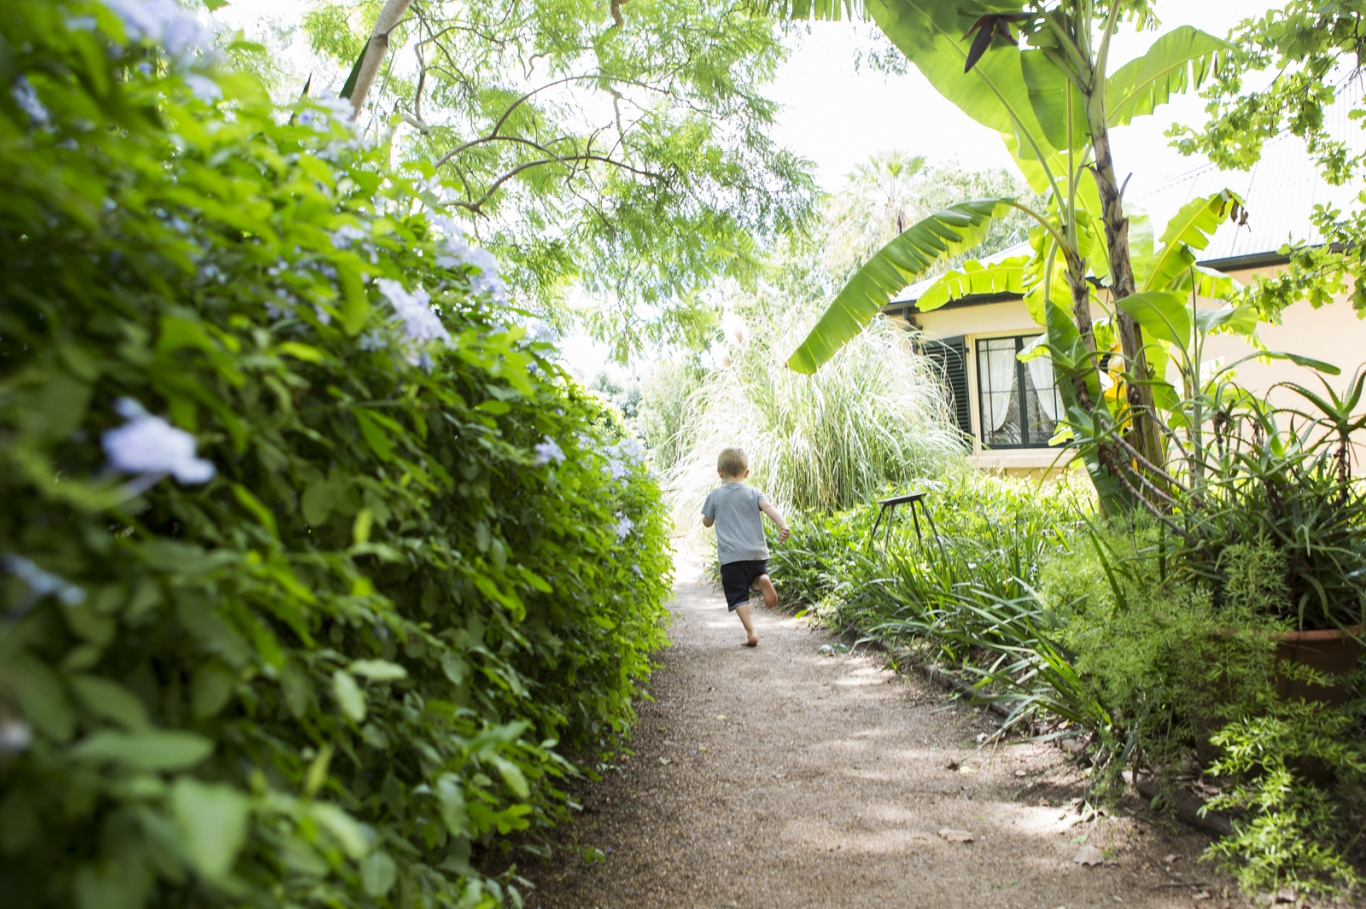 Boy running up a gravel path through leafy green garden towards house.